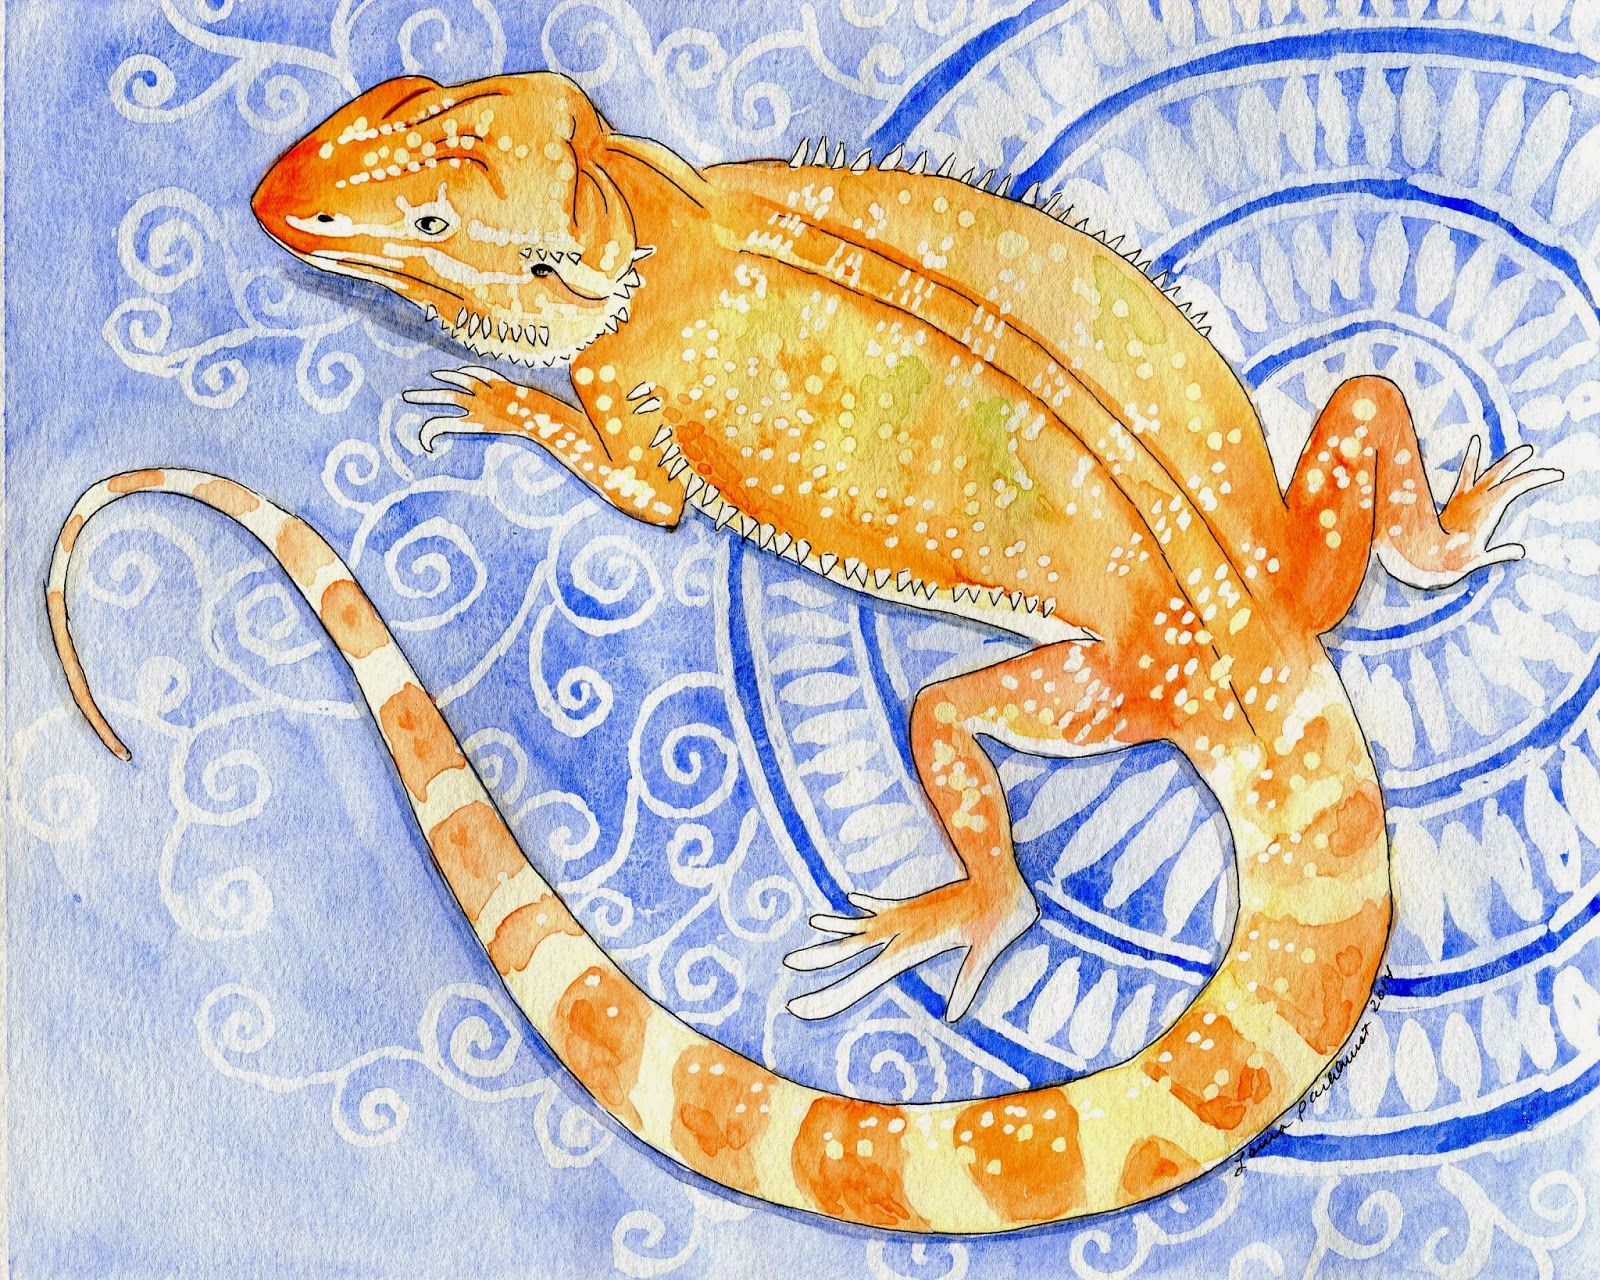 Bearded dragon watercolor | Illustration and art | Pinterest